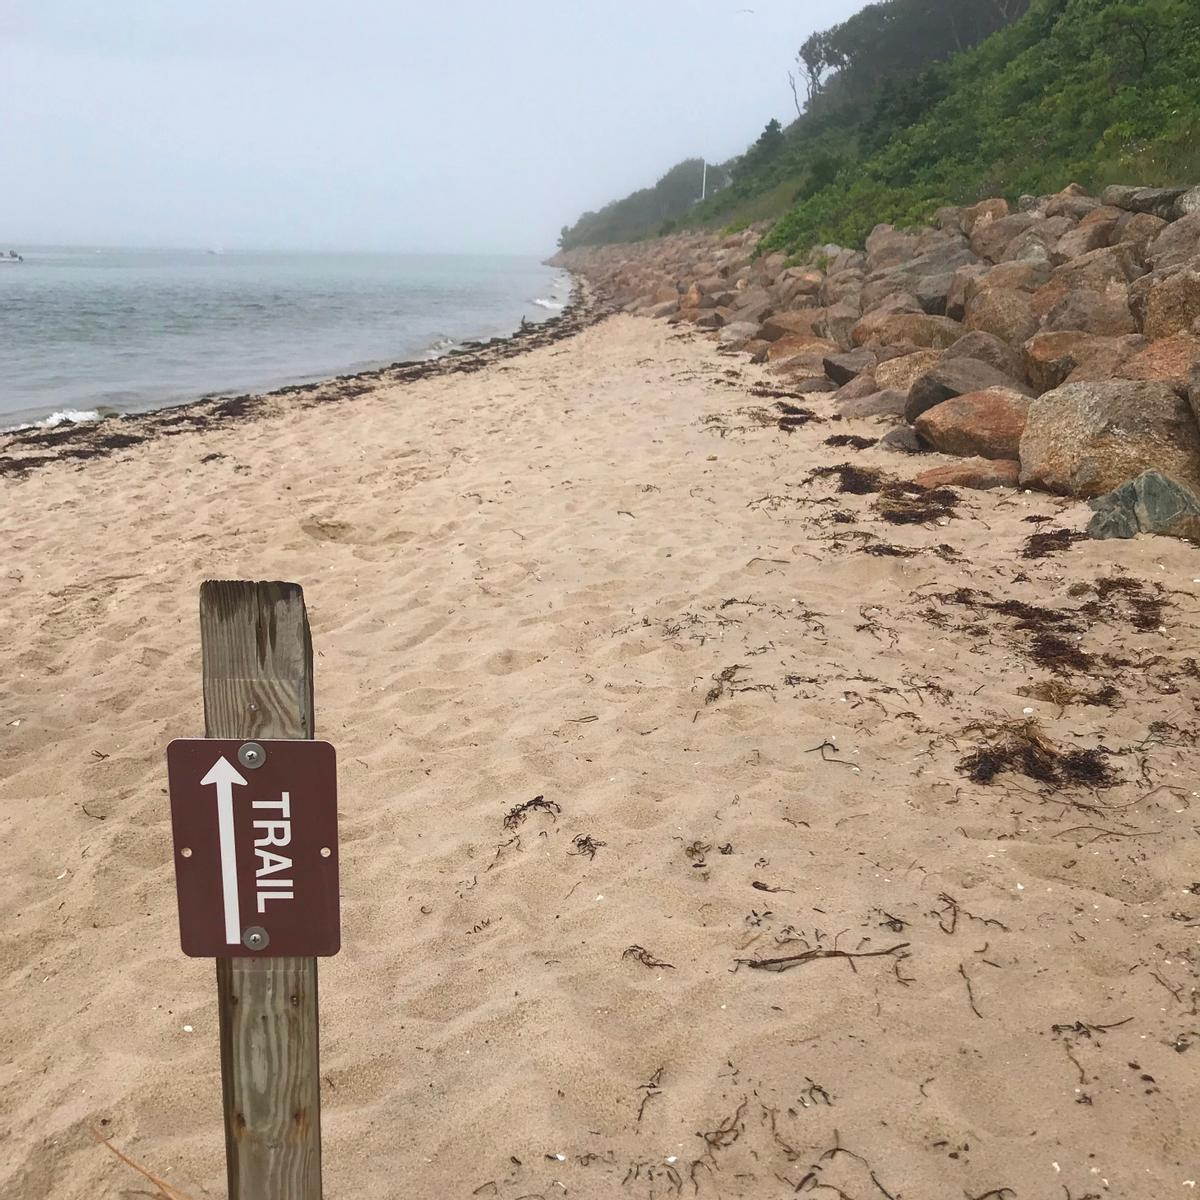 A trail sign with an arrow indicates that the trail goes across a beach